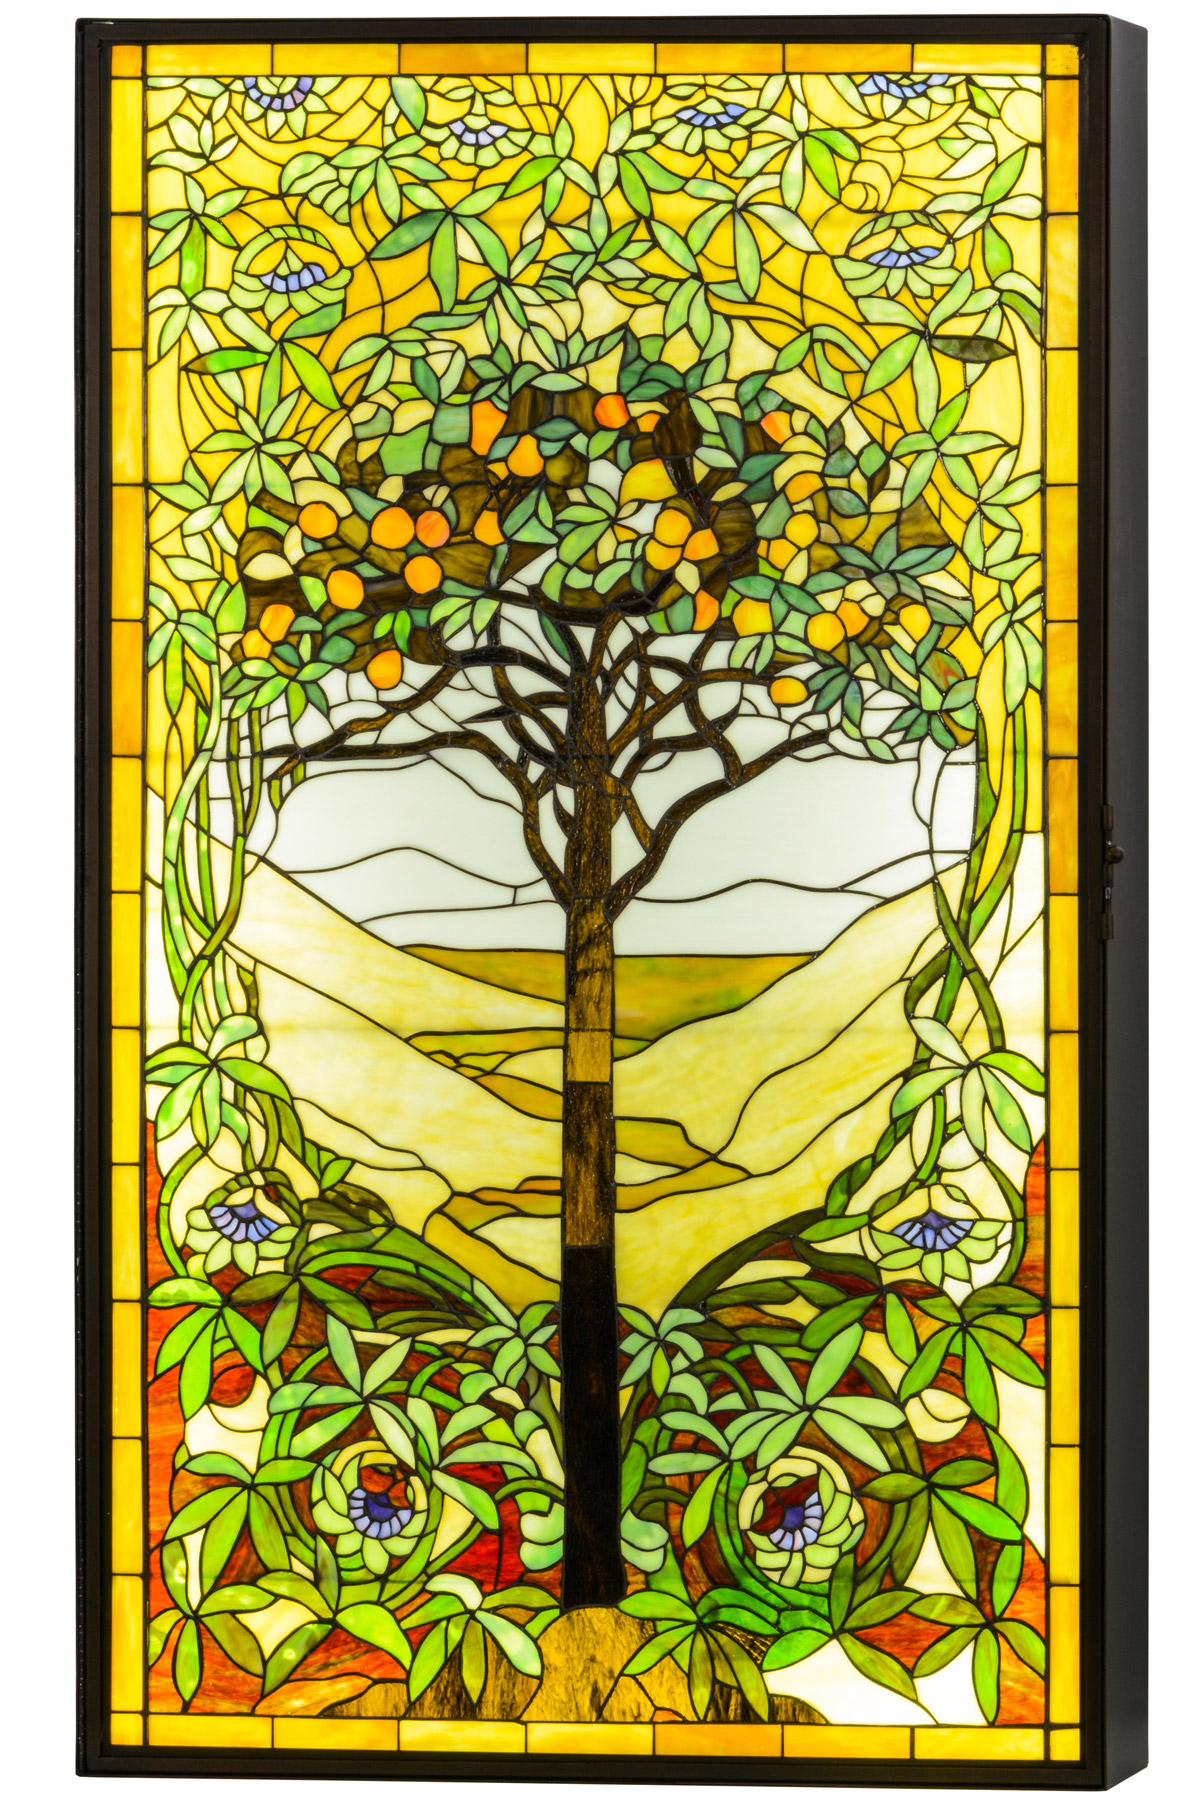 Meyda 152459 Tree Of Life Led Backlit Window Box